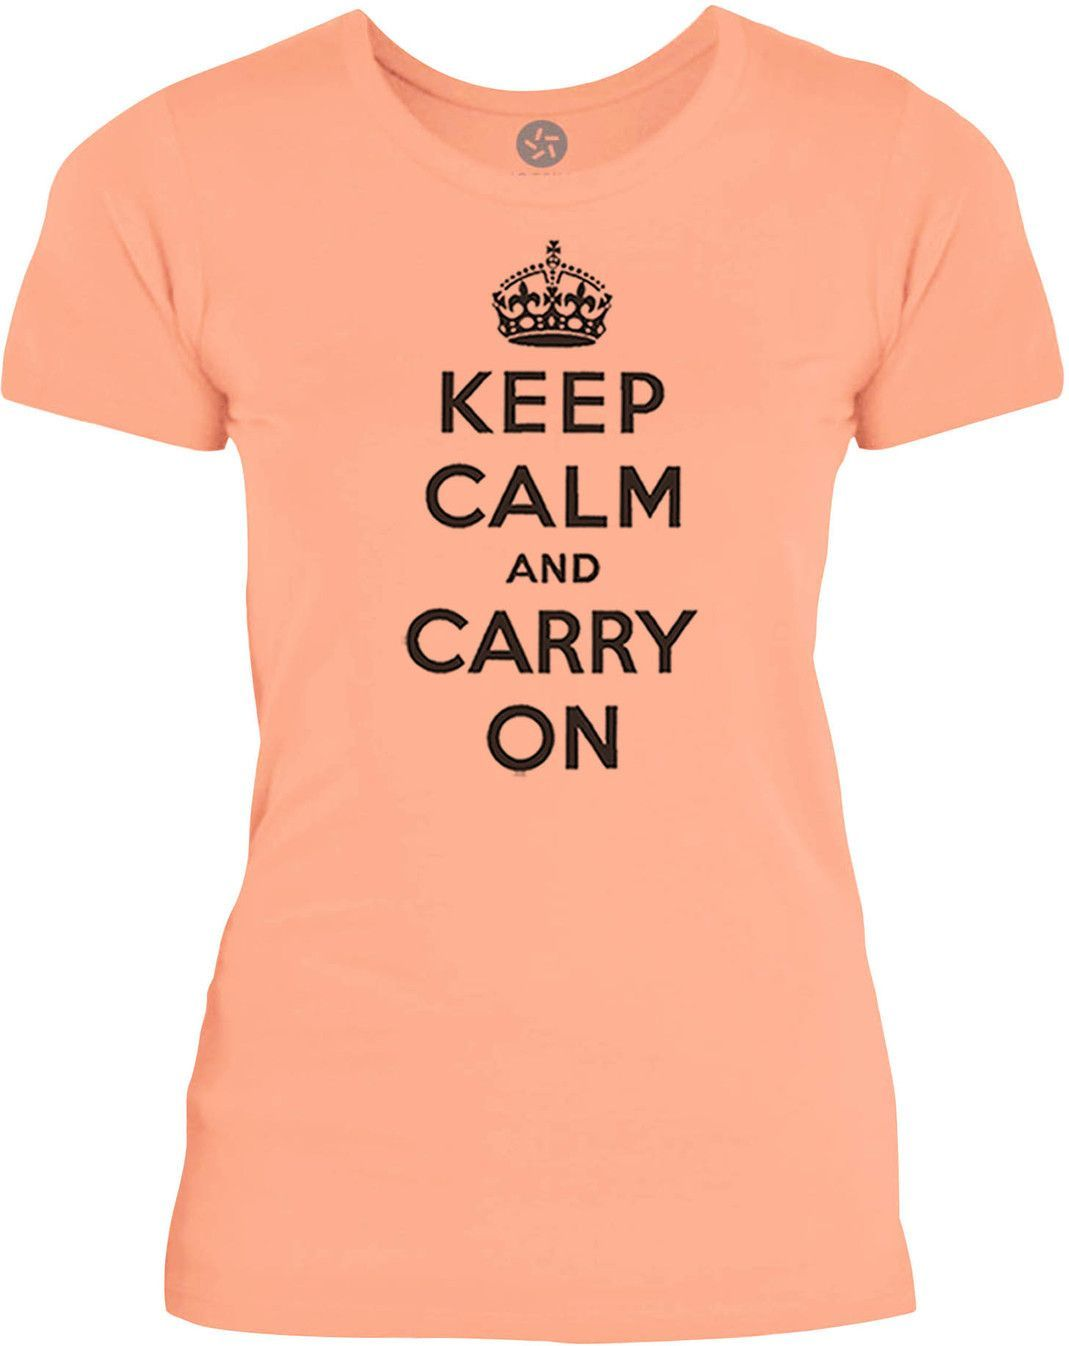 Big Texas Keep Calm and Carry On (Black) Womens Fine Jersey T-Shirt